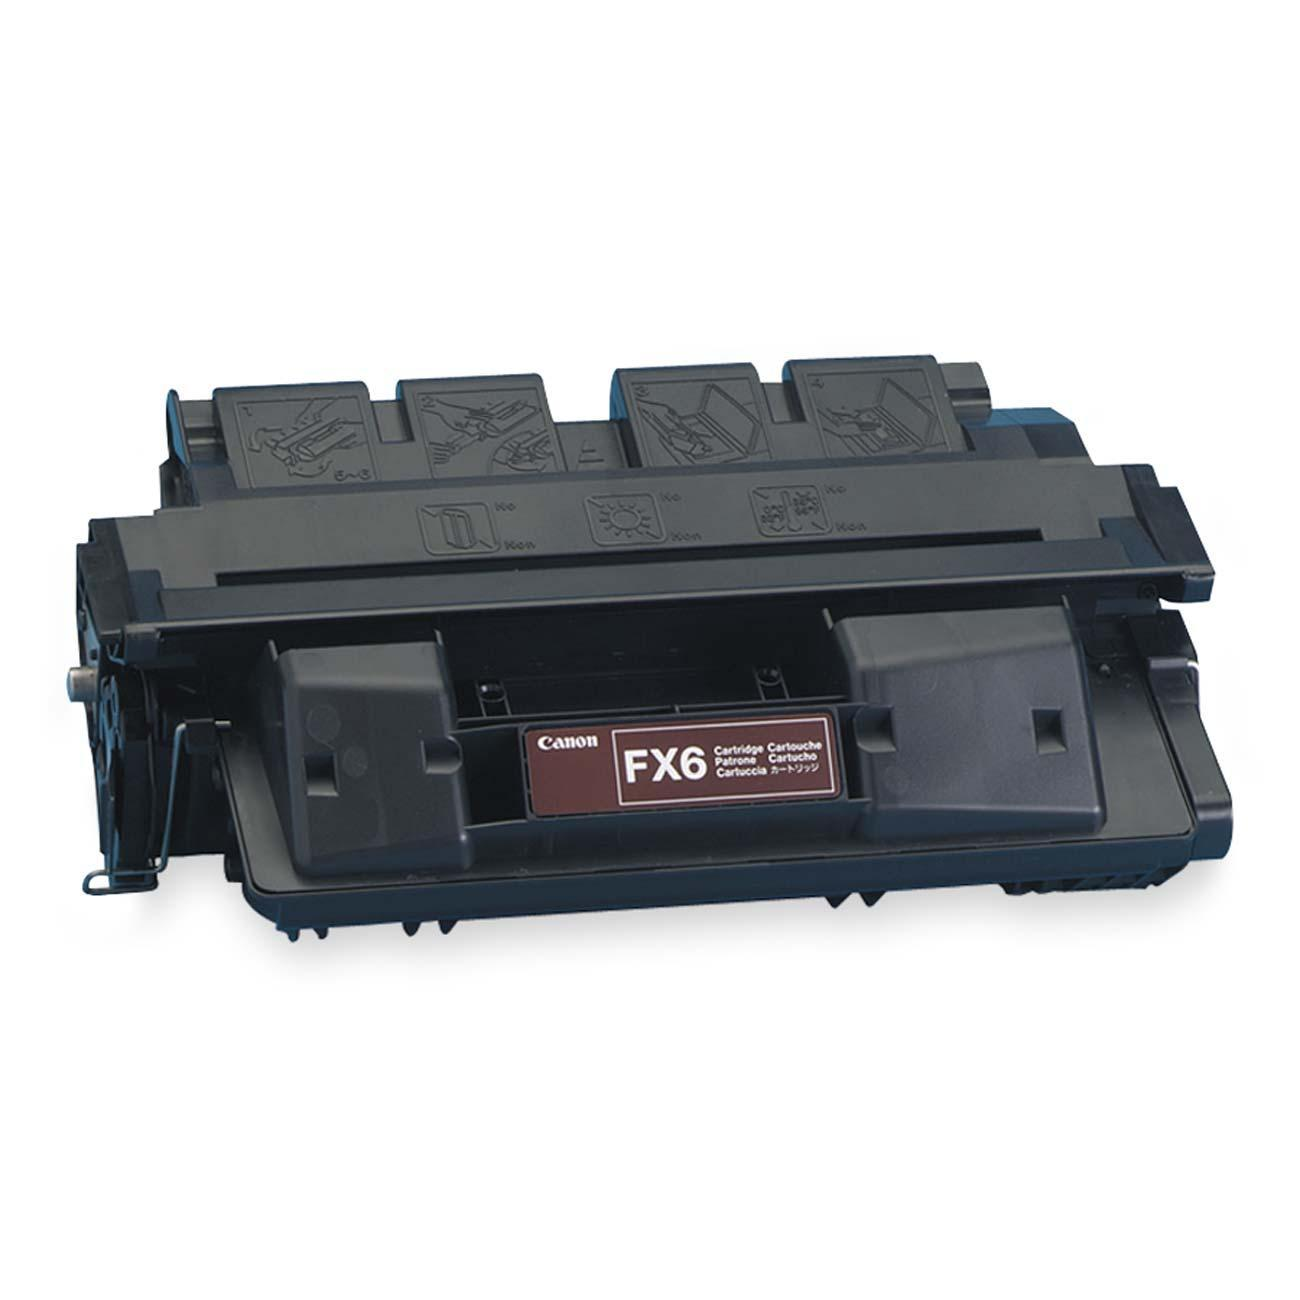 Canon FX6 (Yield: 5,000 Pages) Mono Laser Fax Cartridge 1559A003